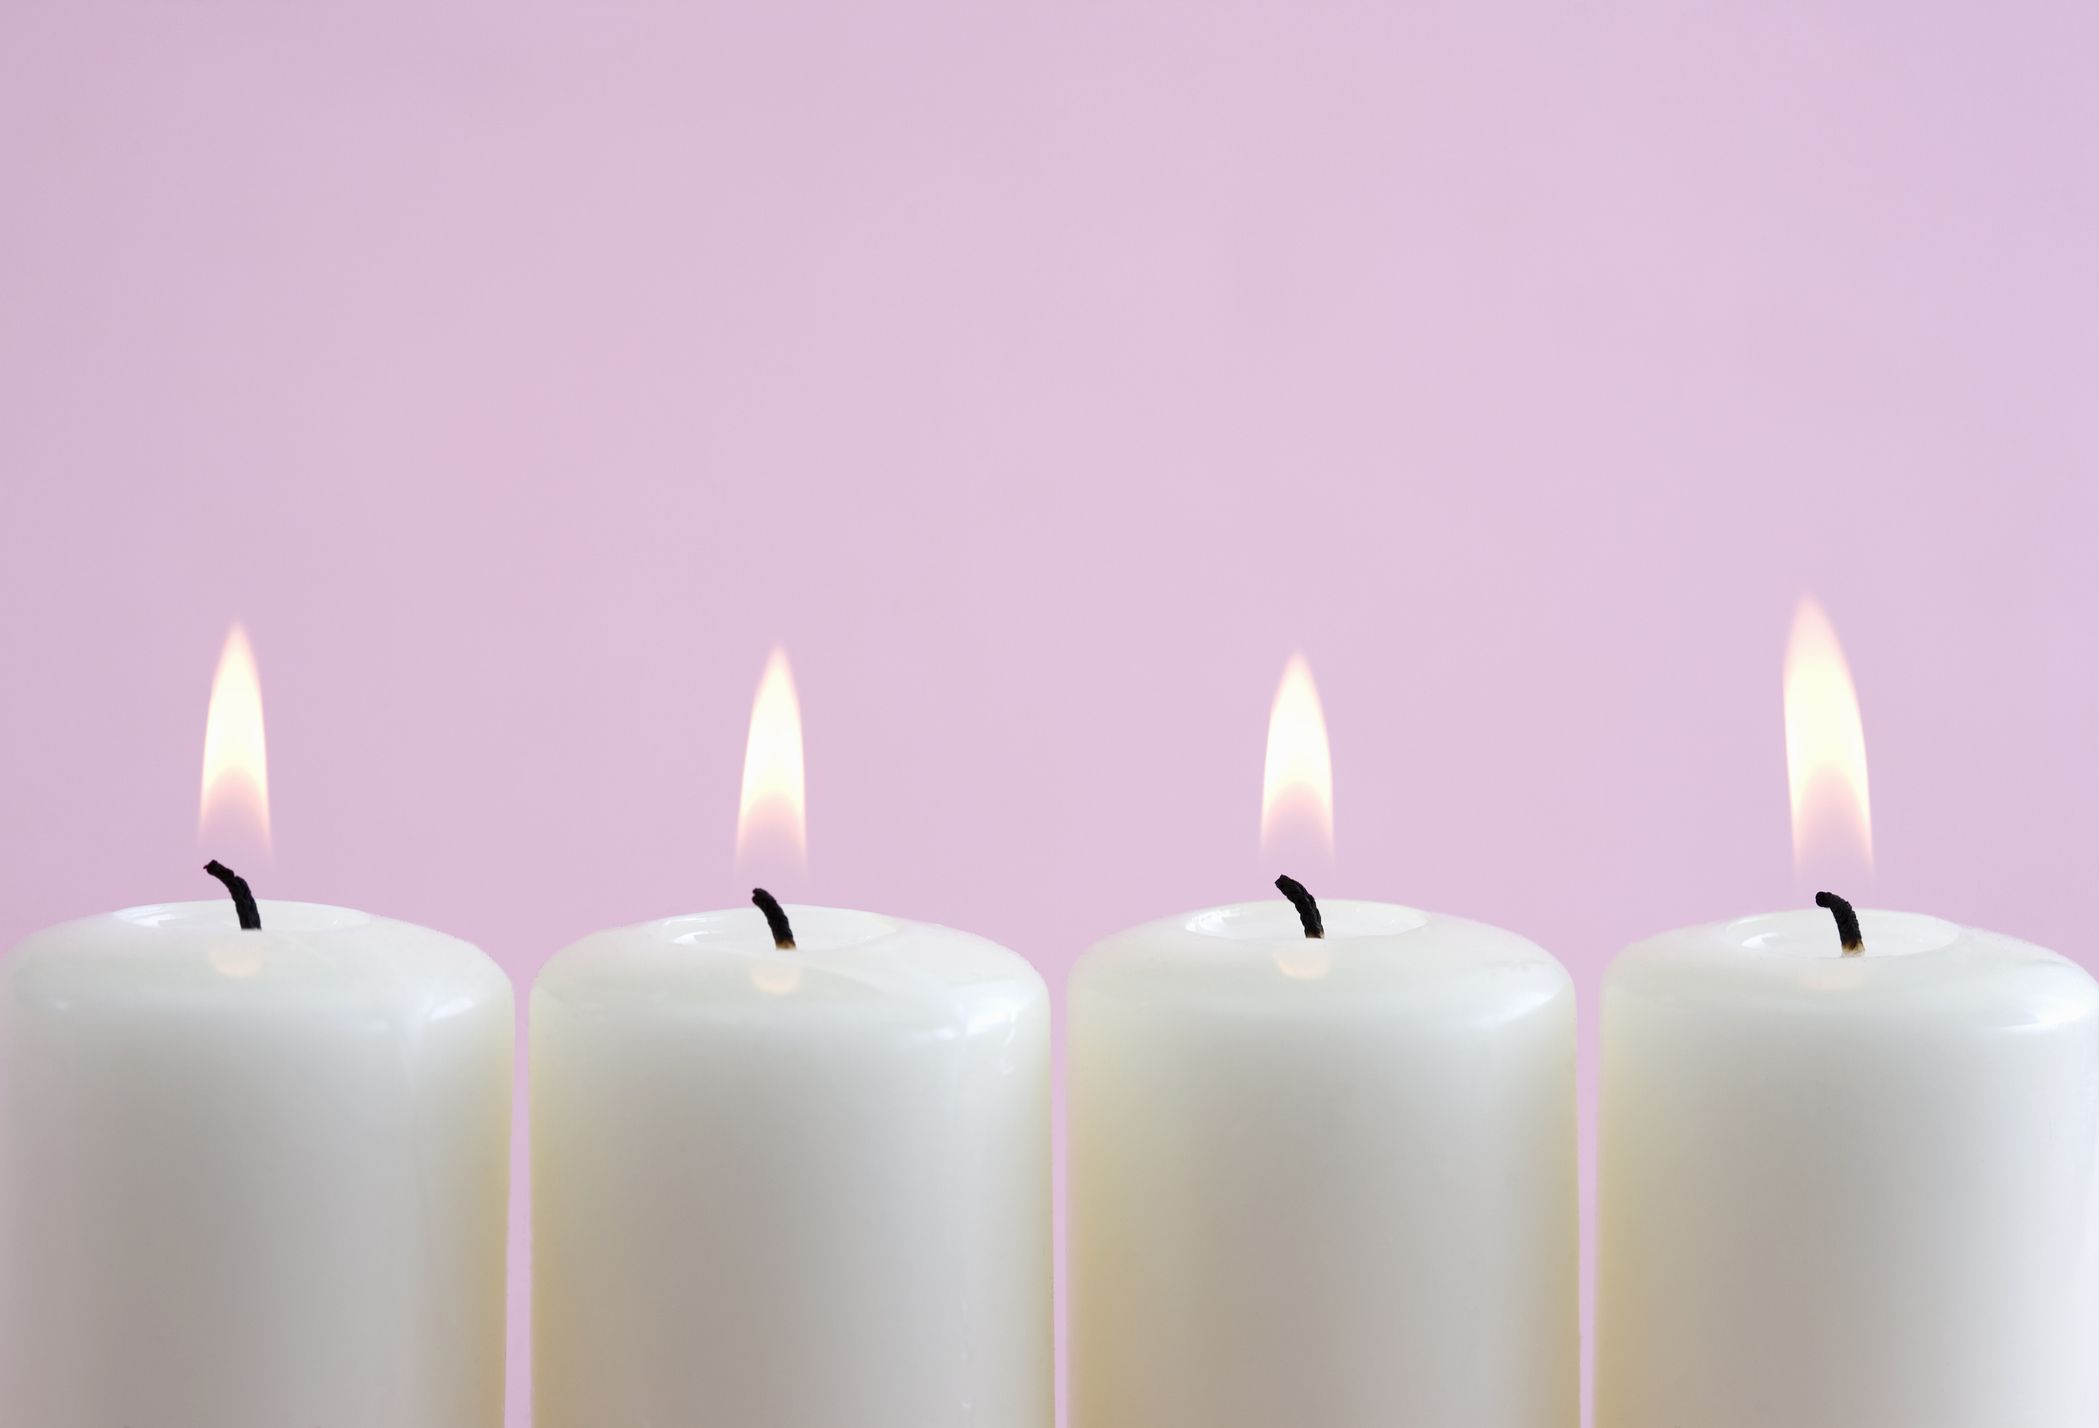 How to get candle wax out of carpets, according to an expert